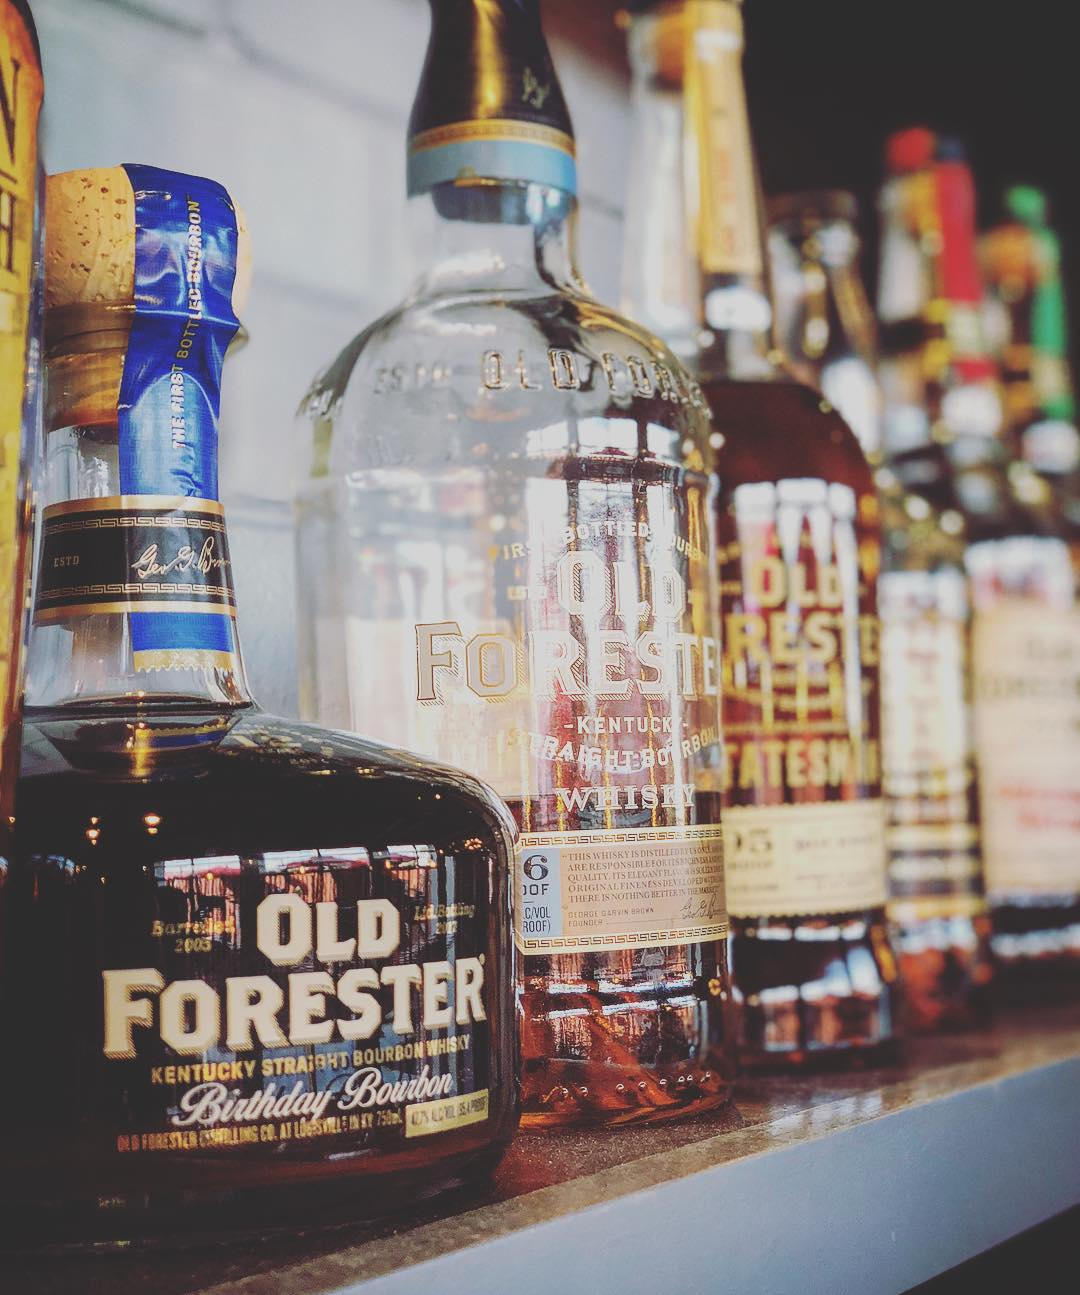 We've got Old Foreter's 2017 Birthday Bourbon in the House!…